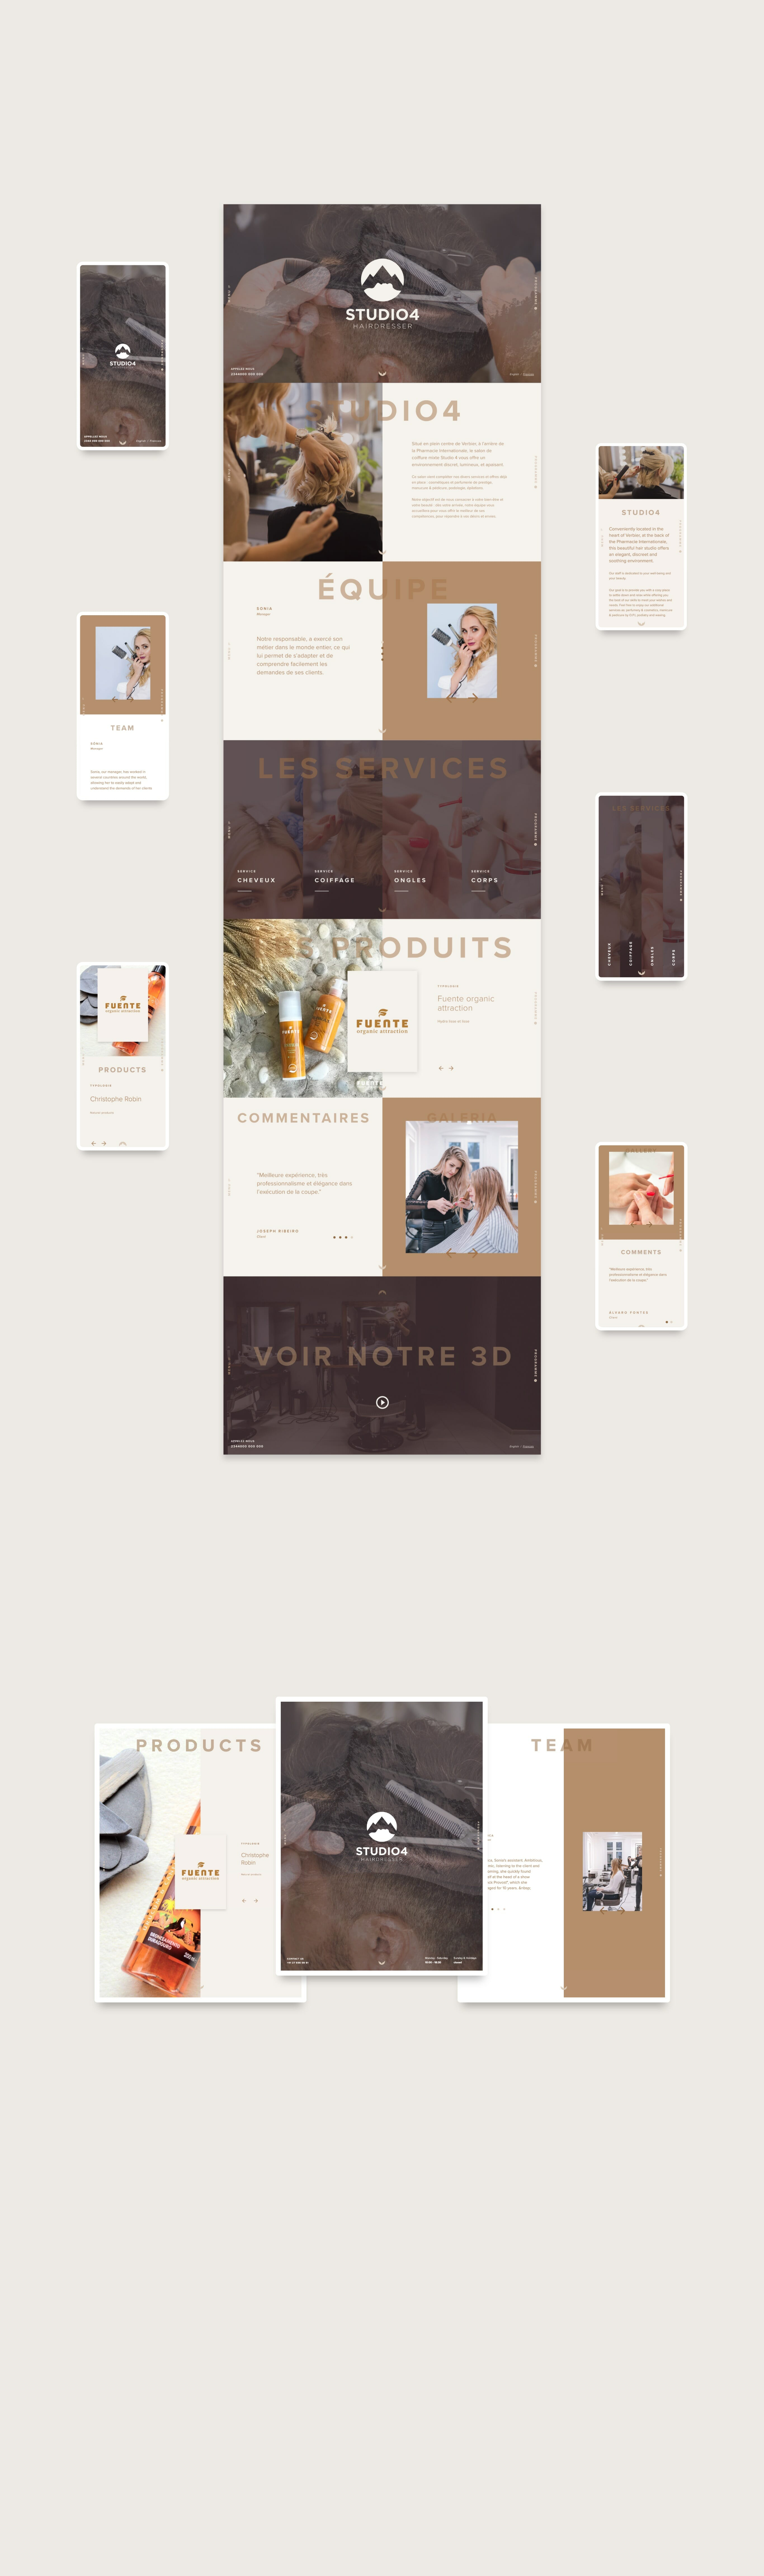 layouts for website